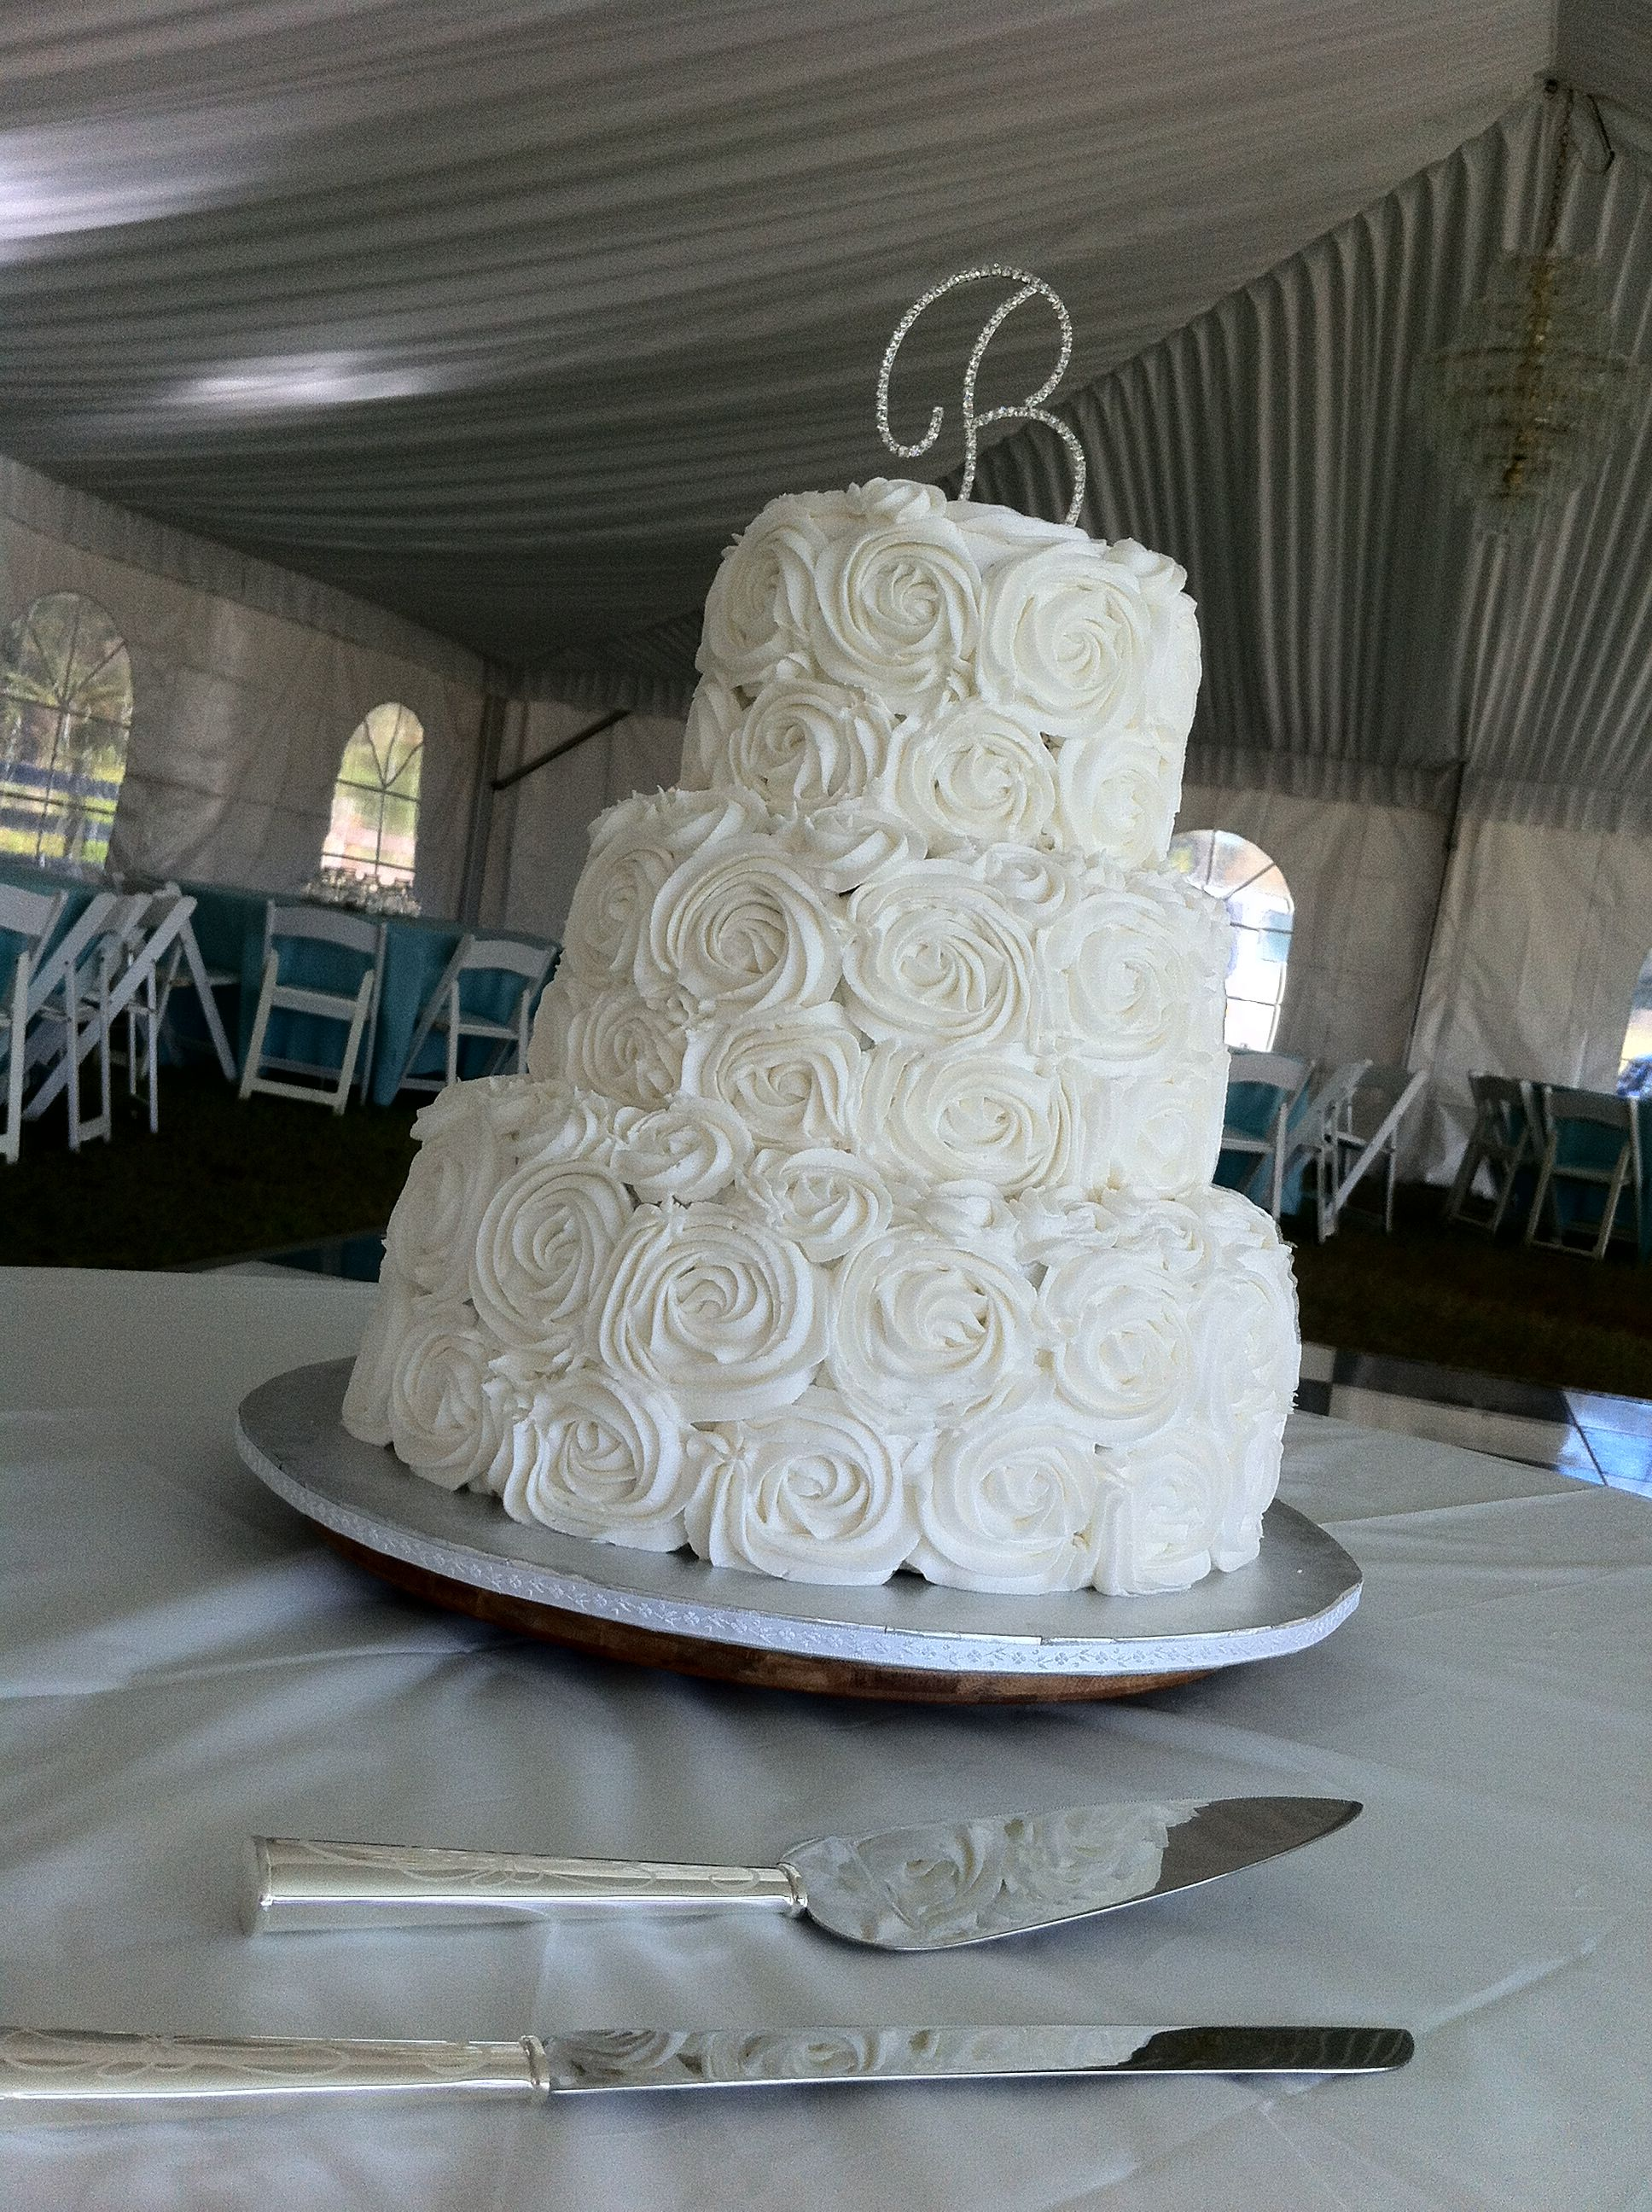 d4a60937c Buttercream roses cake - maybe roses on the top and bottom tiers ...